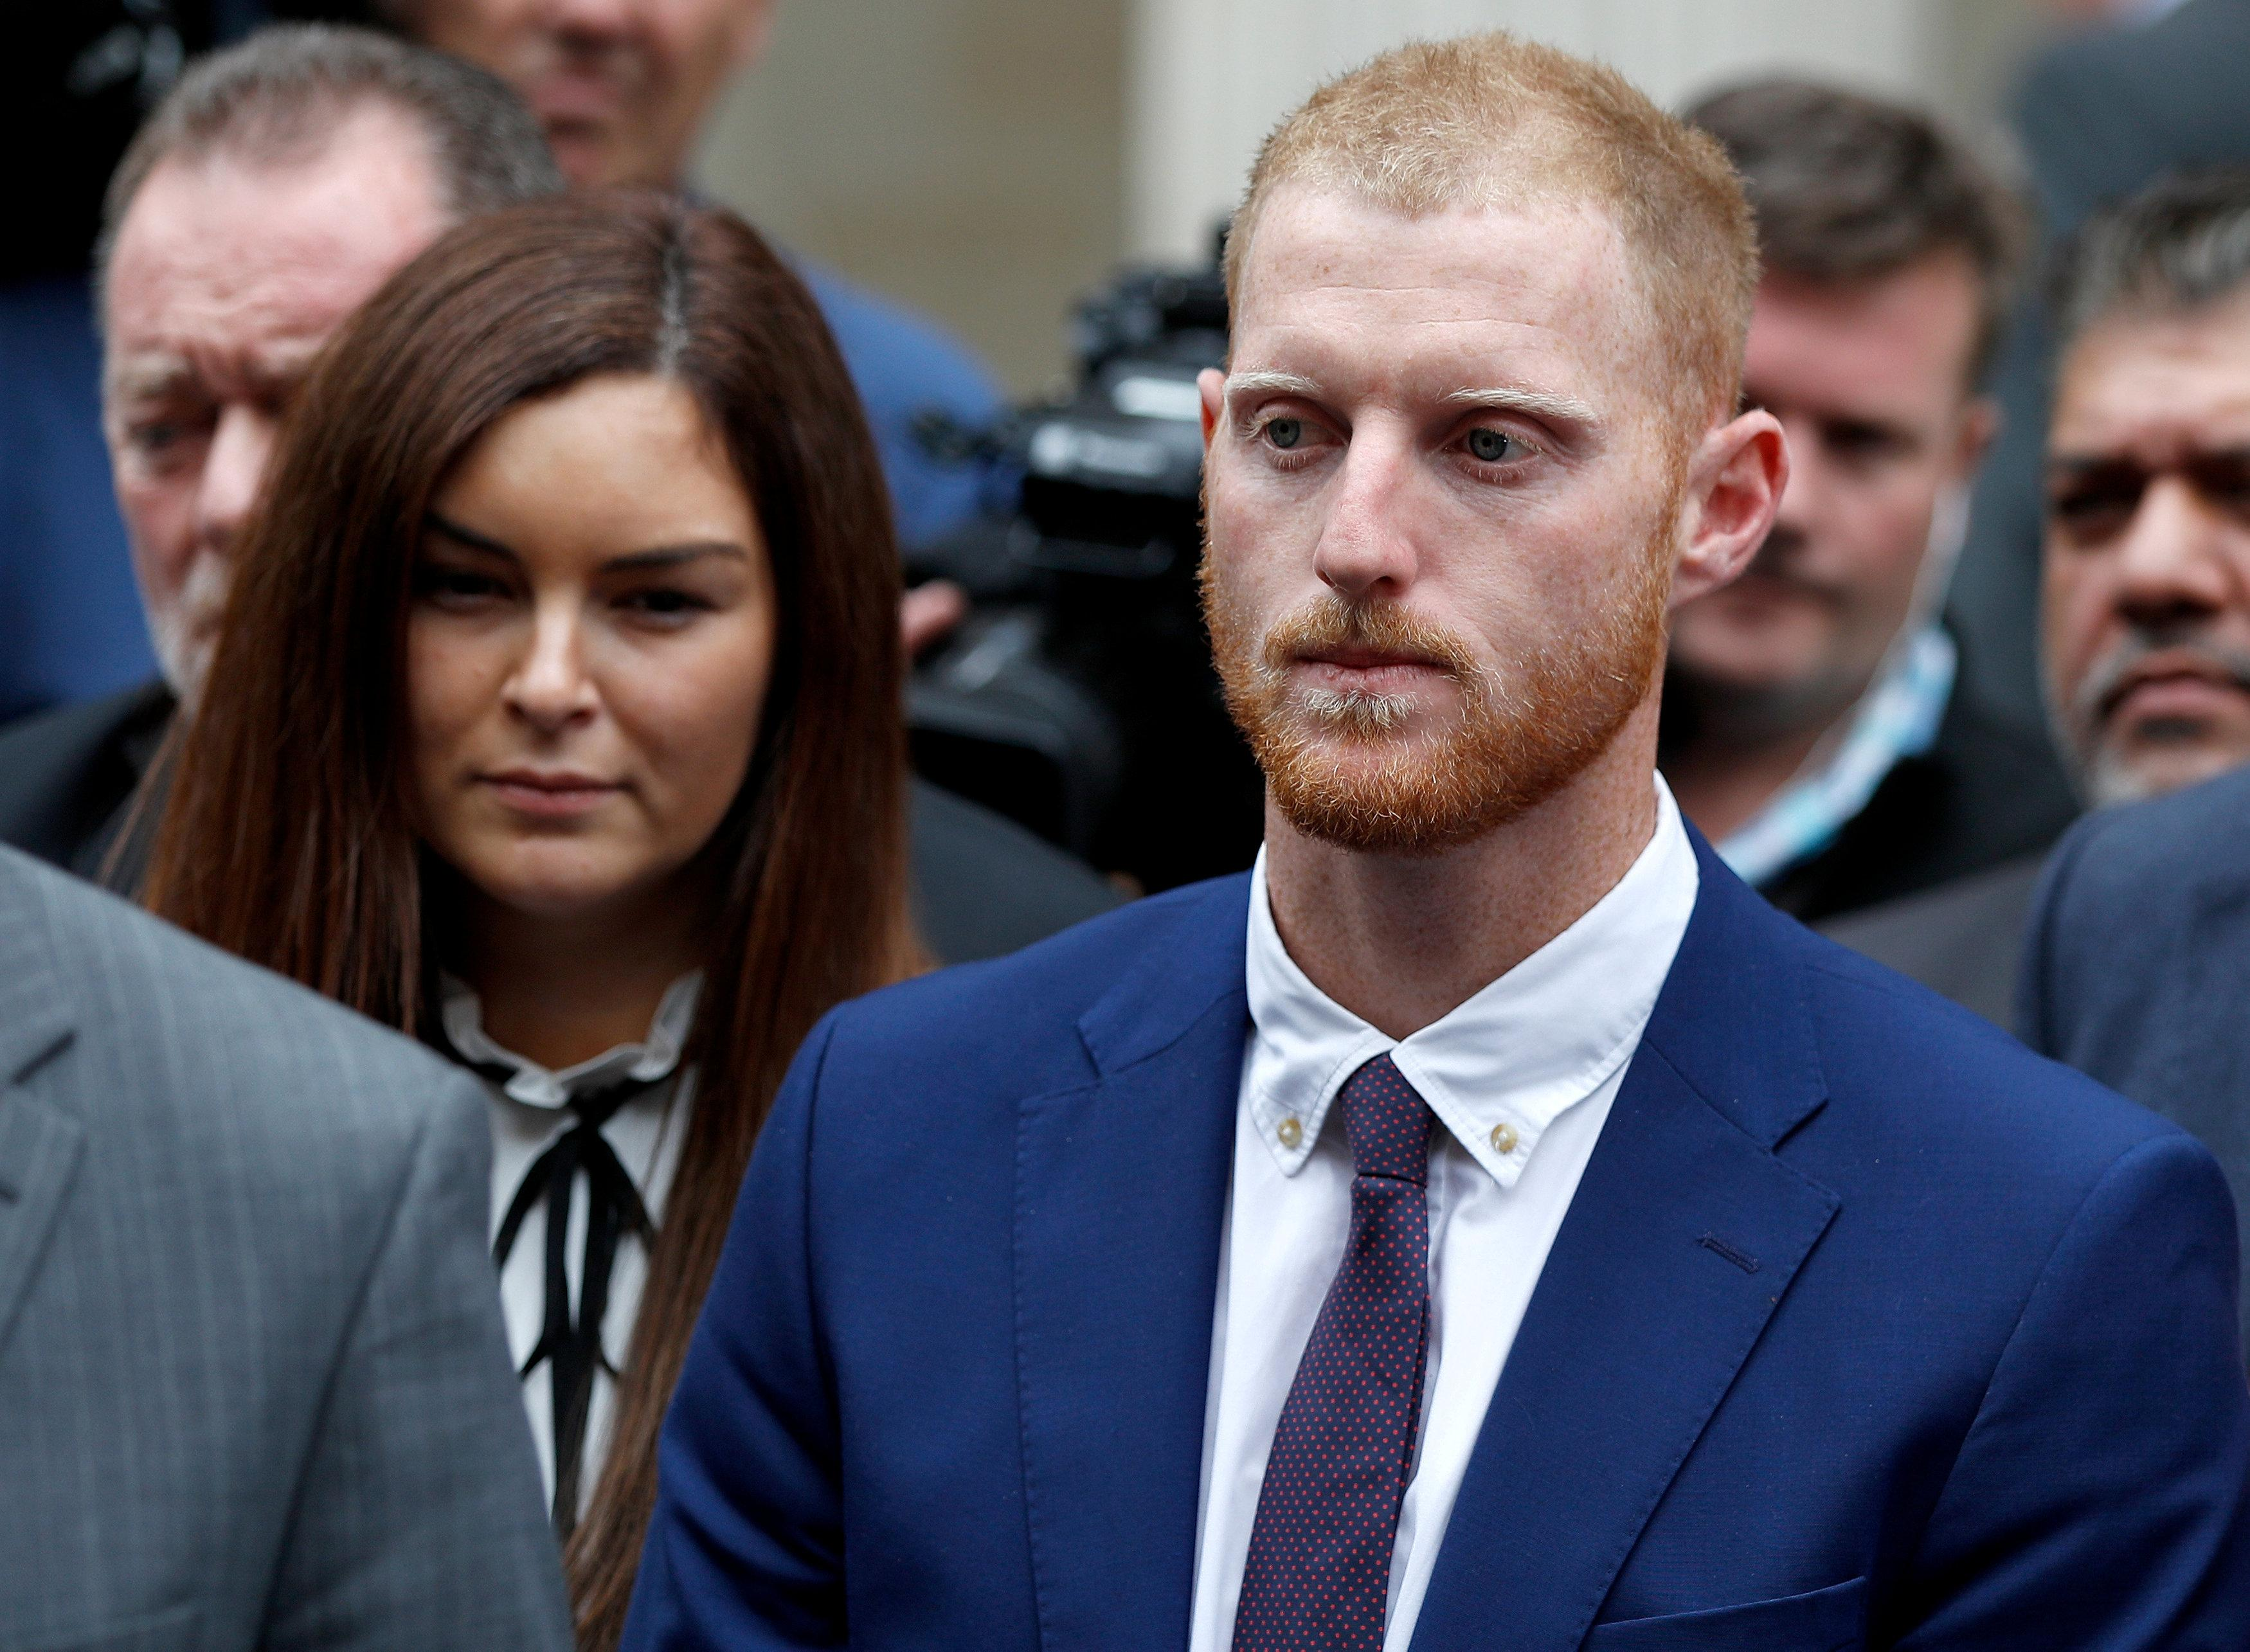 Ben Stokes was found not guilty of affray in Bristol last month